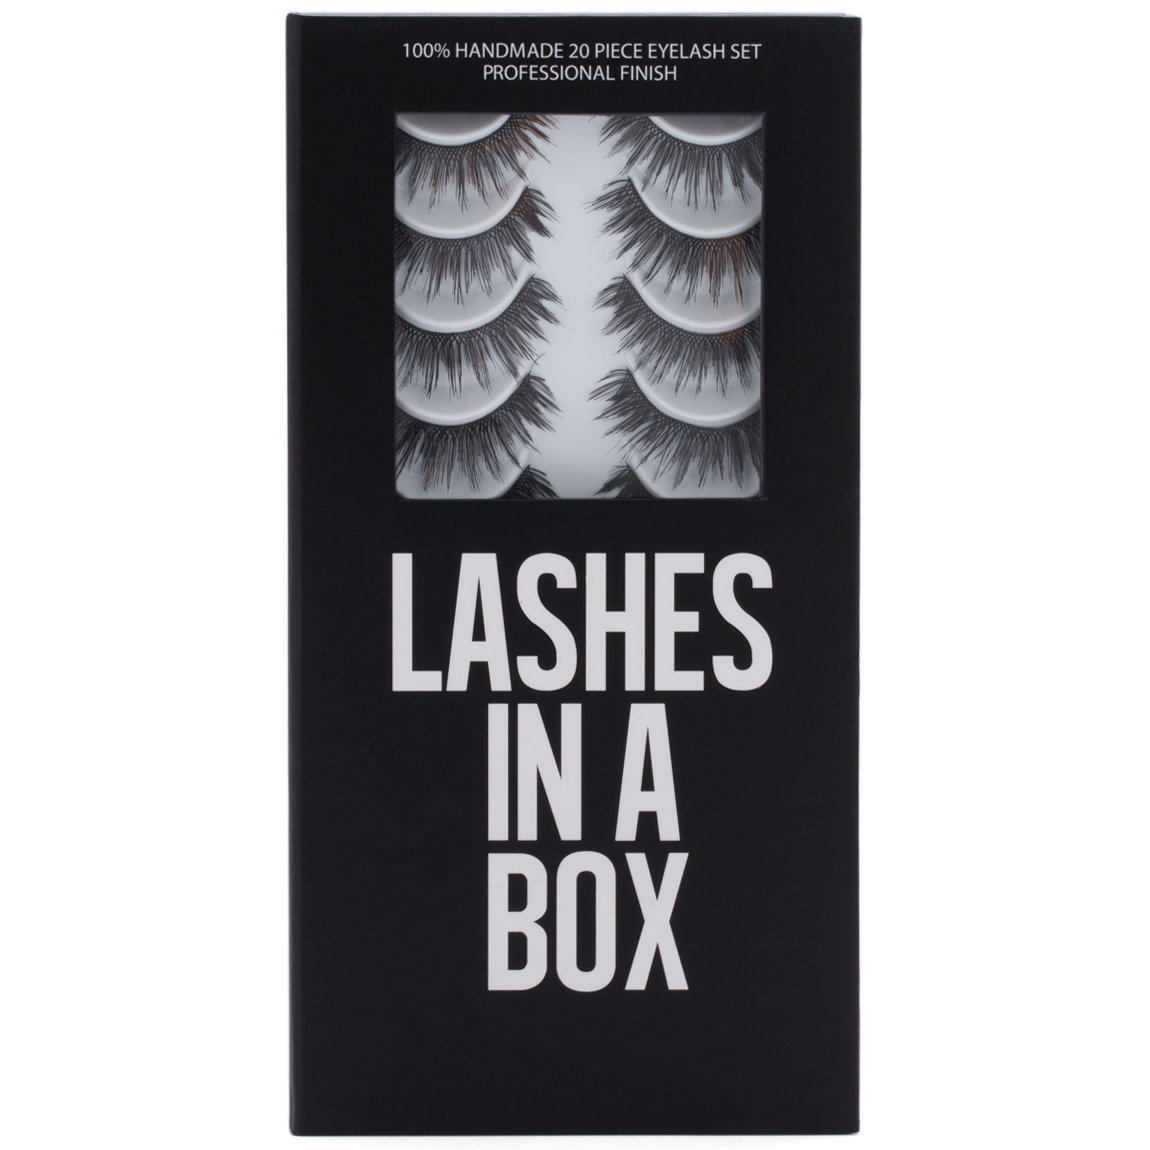 LASHES IN A BOX N°4 product swatch.